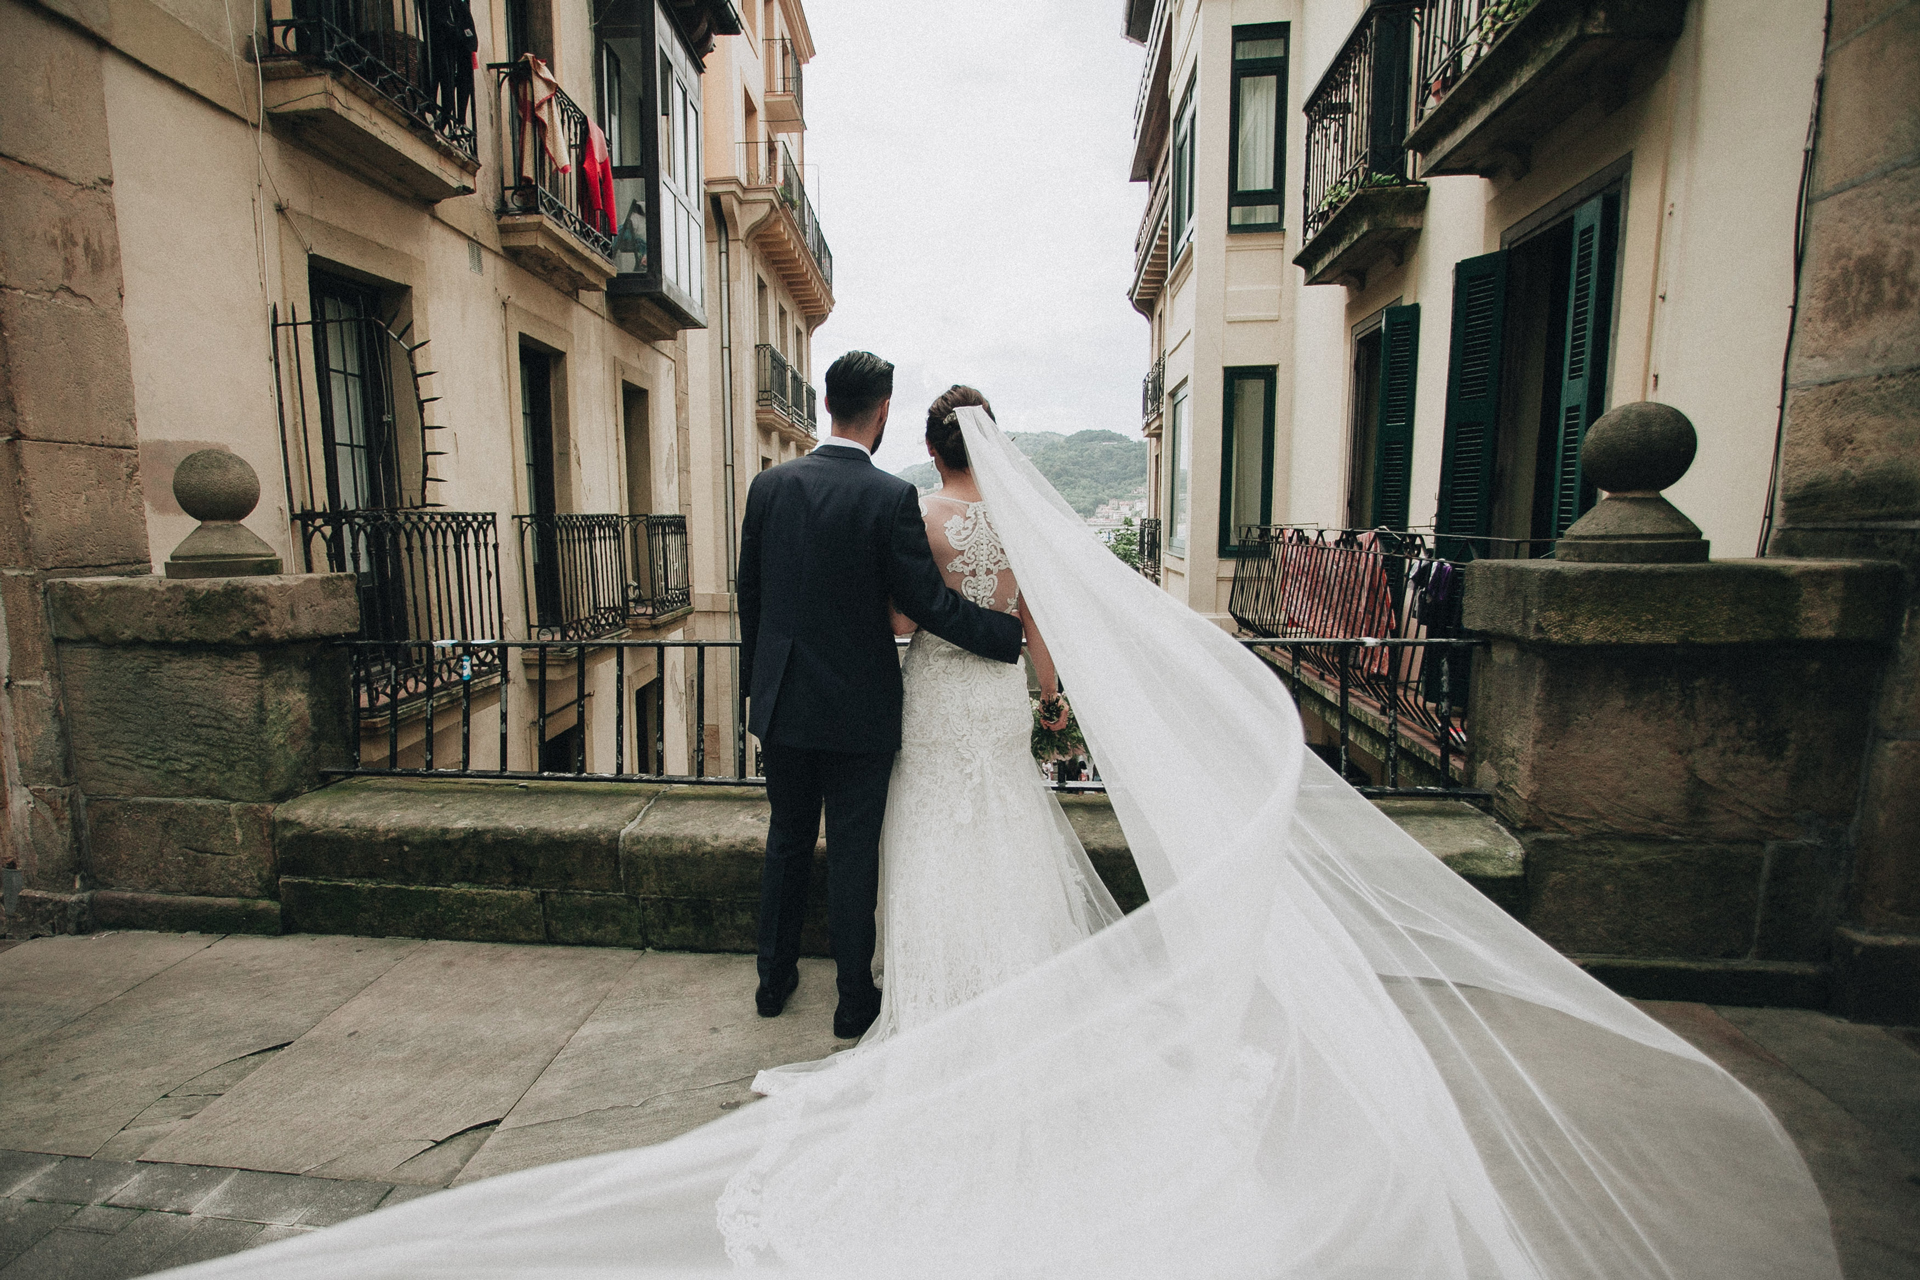 Wedding & Event Planner - Destination Wedding in San Sebastián - Wedding Maria & Luis 06